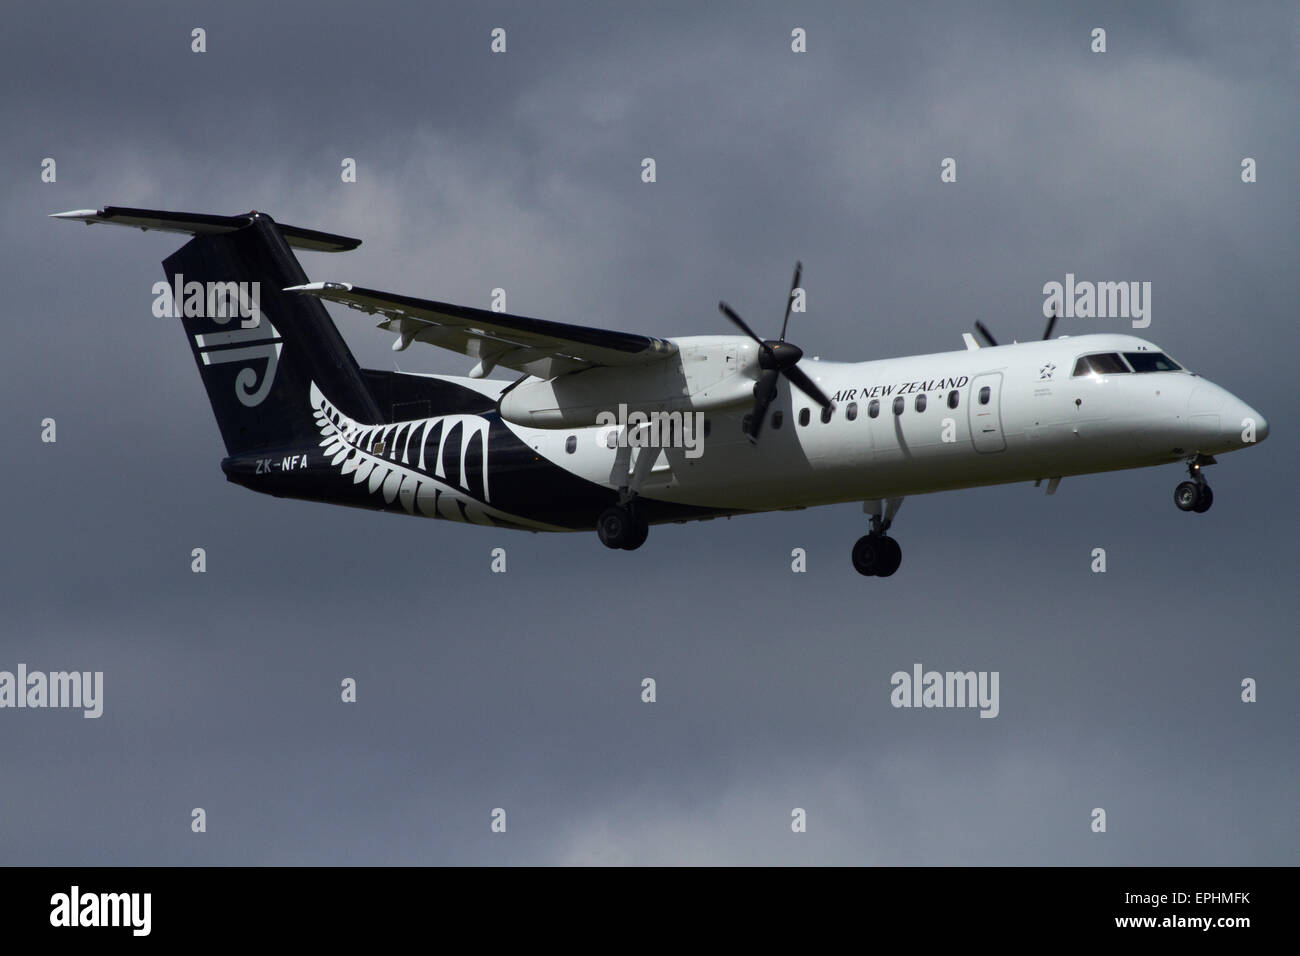 Air New Zealand Bombardier Dash 8 landing at Auckland Domestic Airport, Auckland, North Island, New Zealand - Stock Image